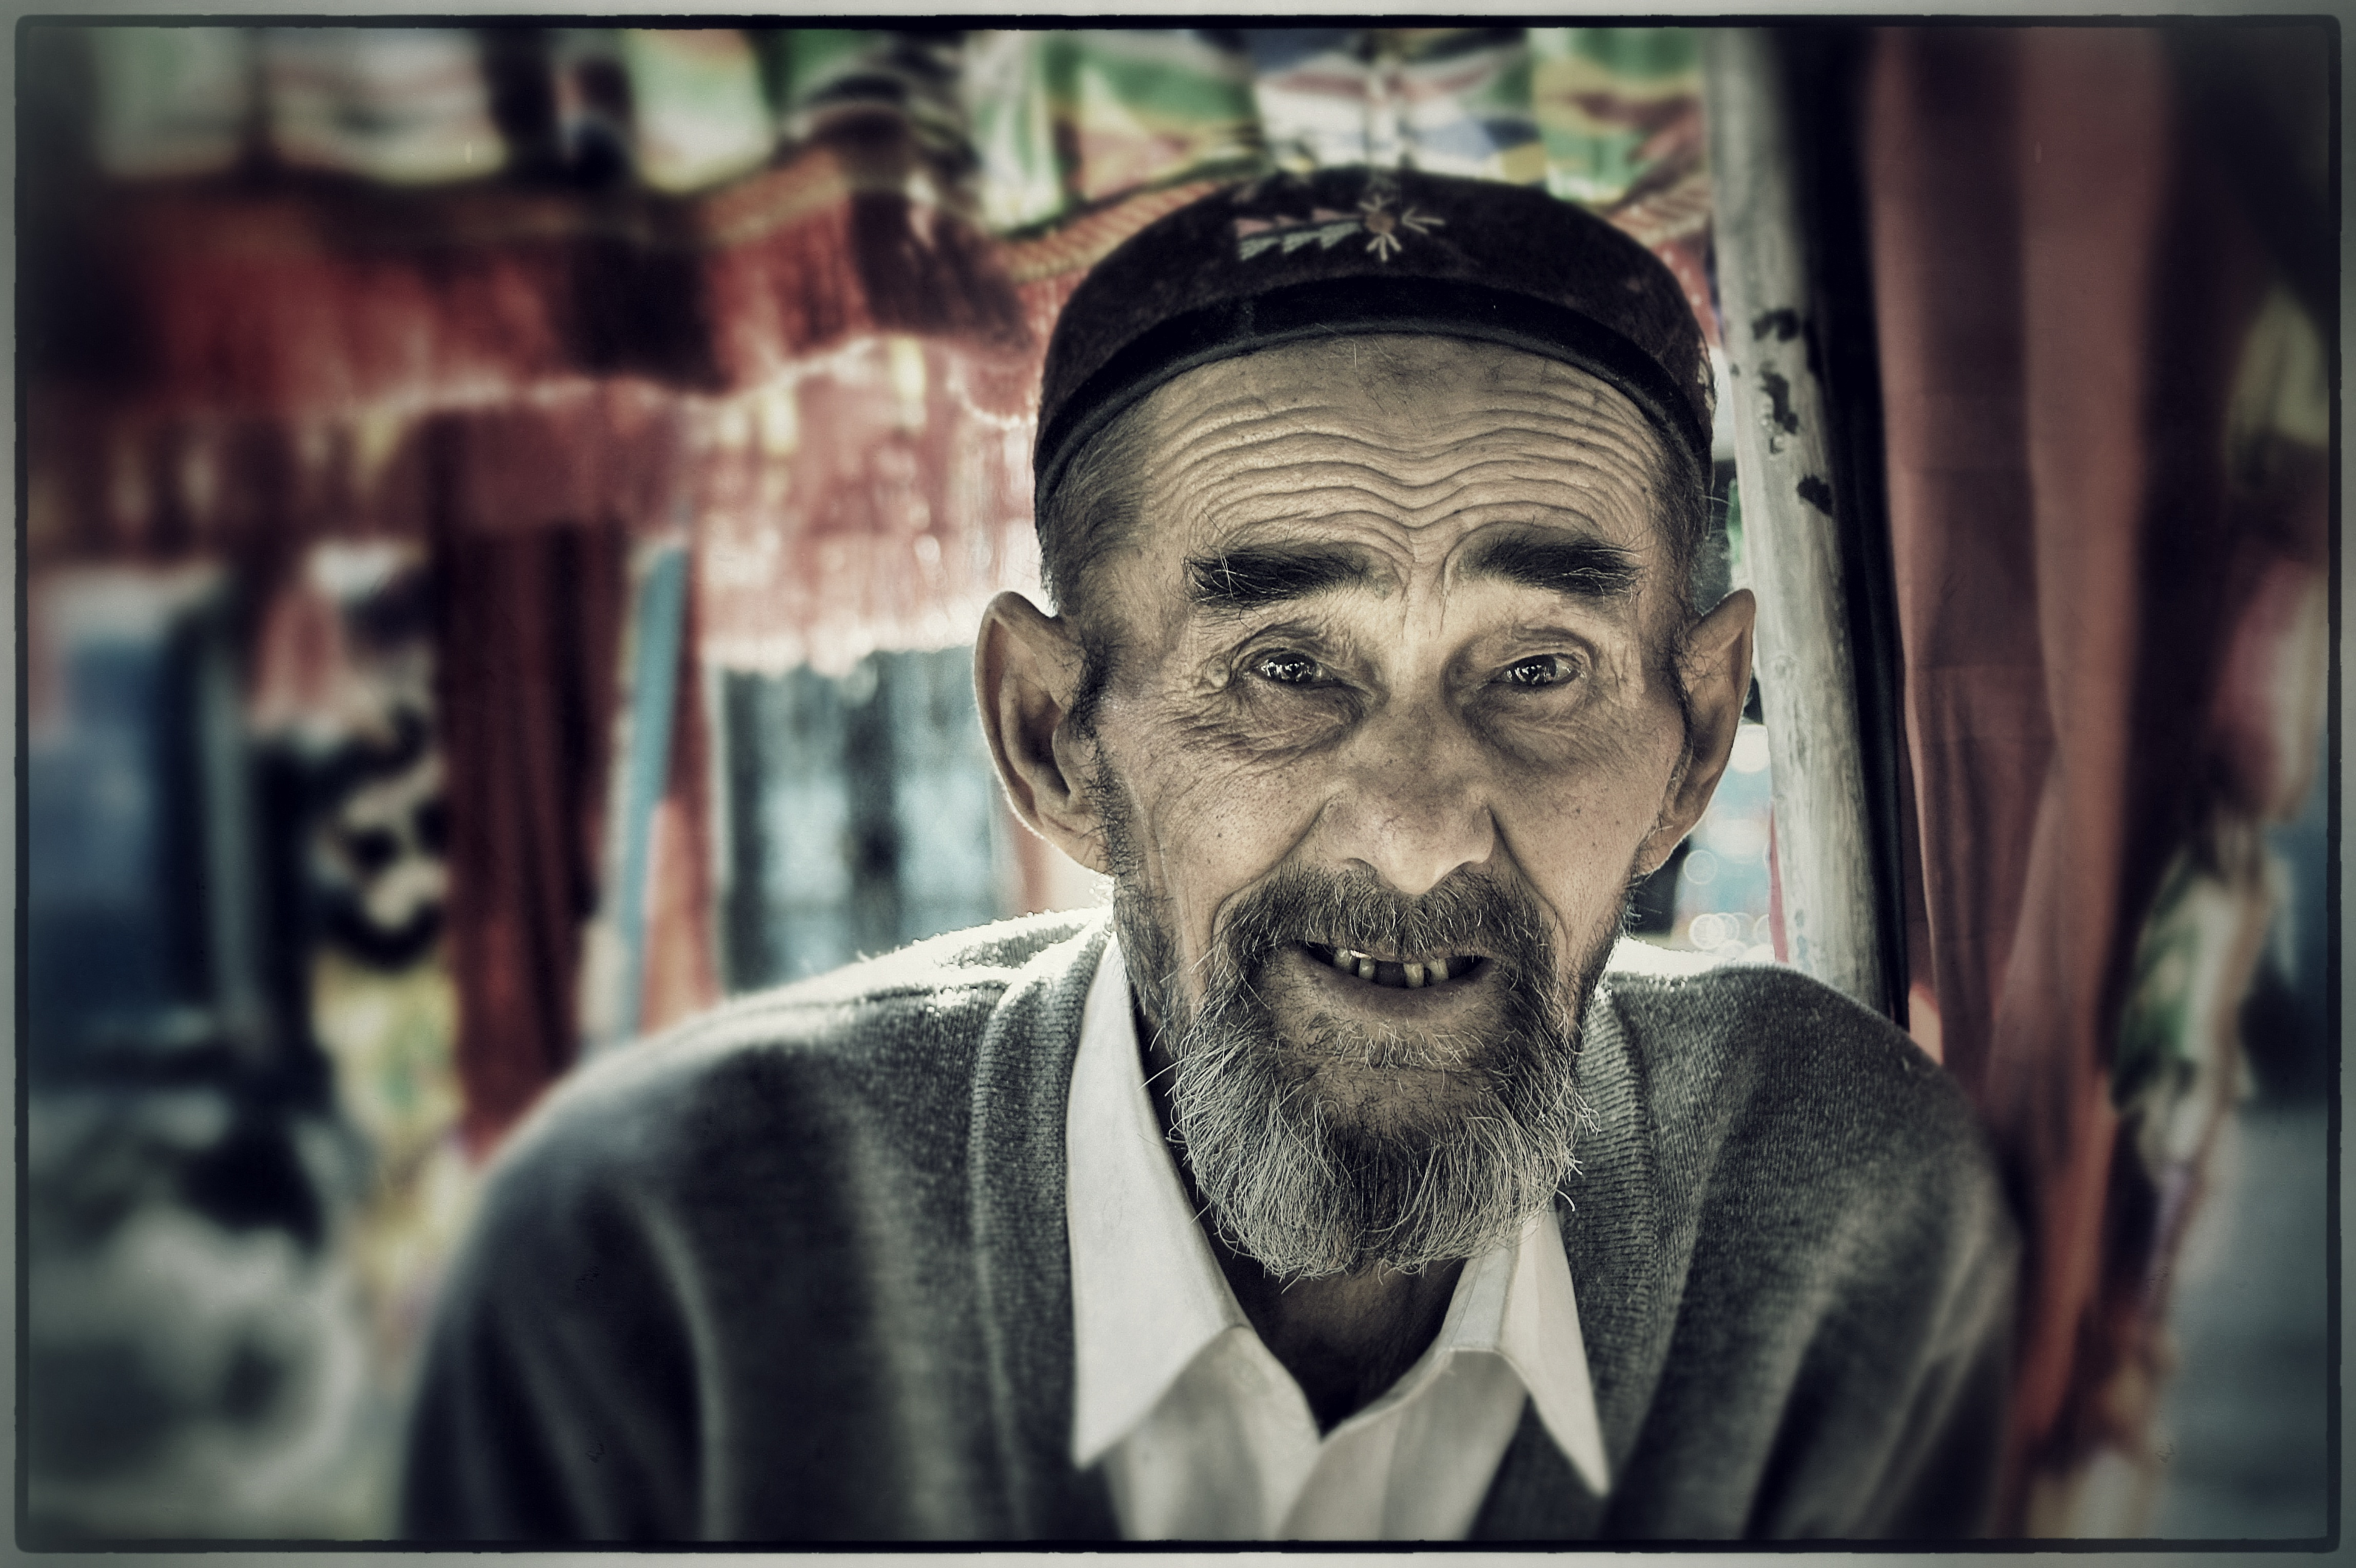 Chinese Portraits : Kazakh Coachman - Portraits from diverse ethnic origins like Uyghur, Han, Kazak, Hui, Xibo and Mongol in China.